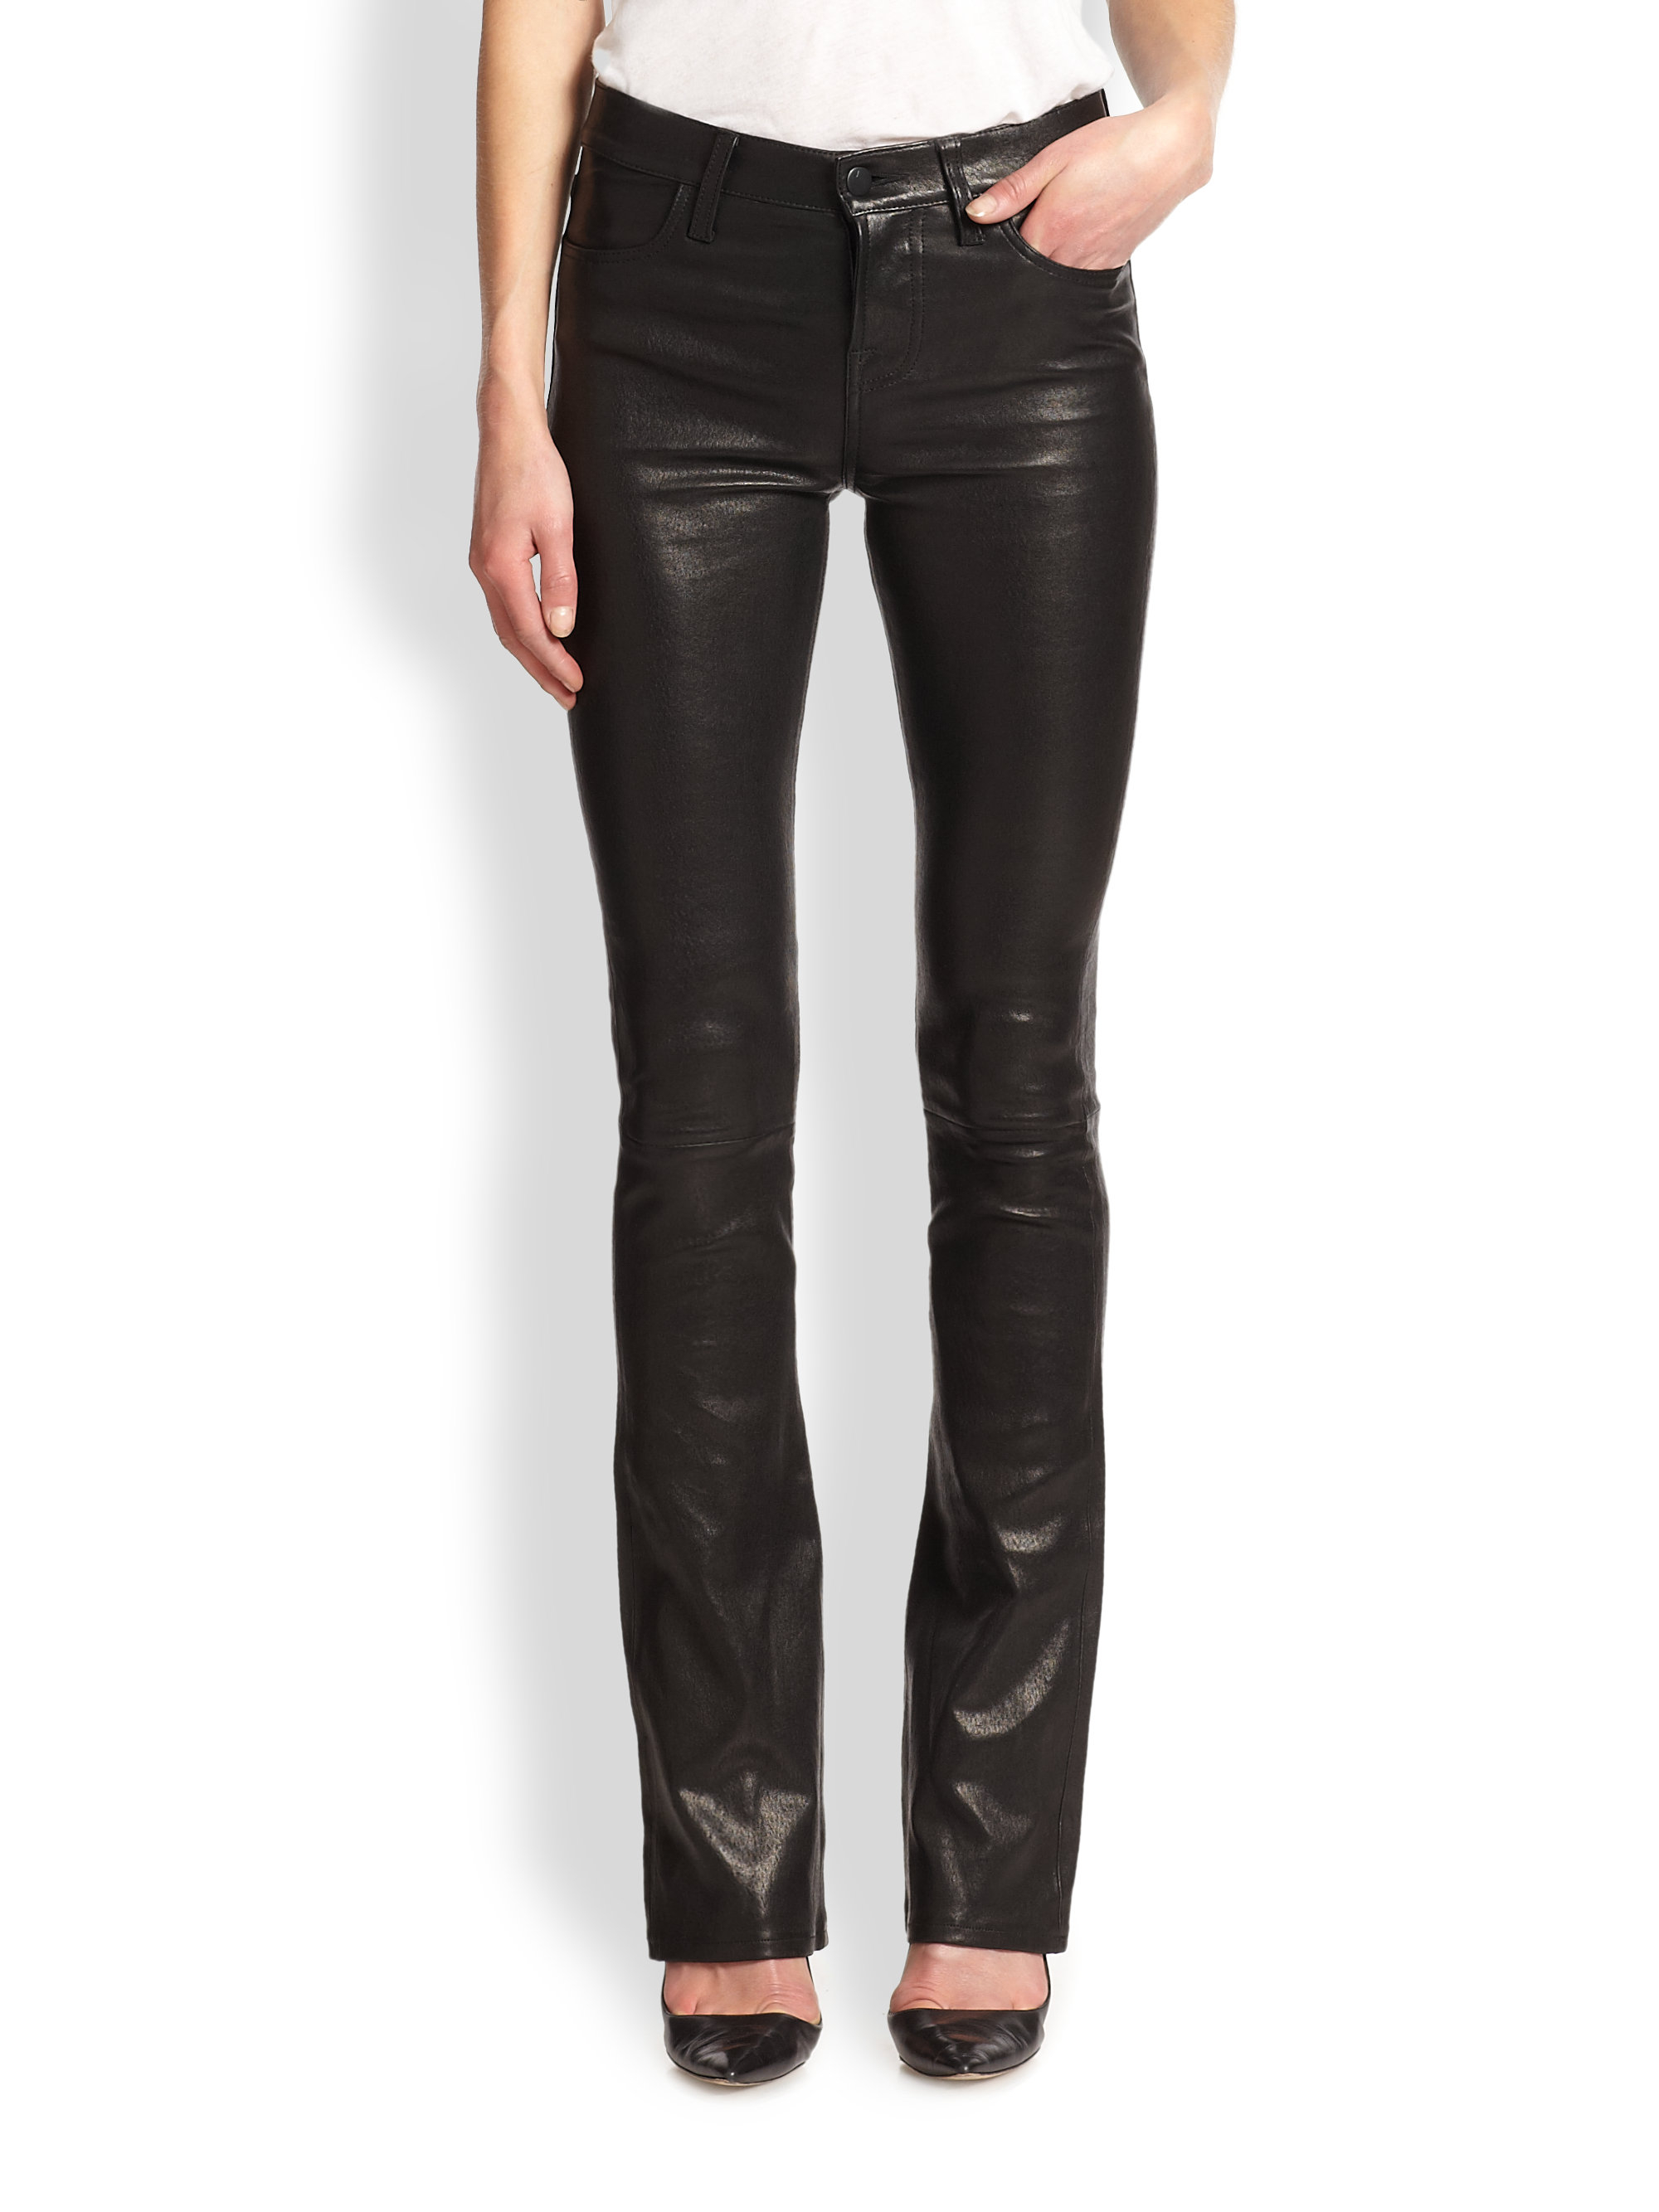 J brand Remy Leather Bootcut Jeans in Black | Lyst